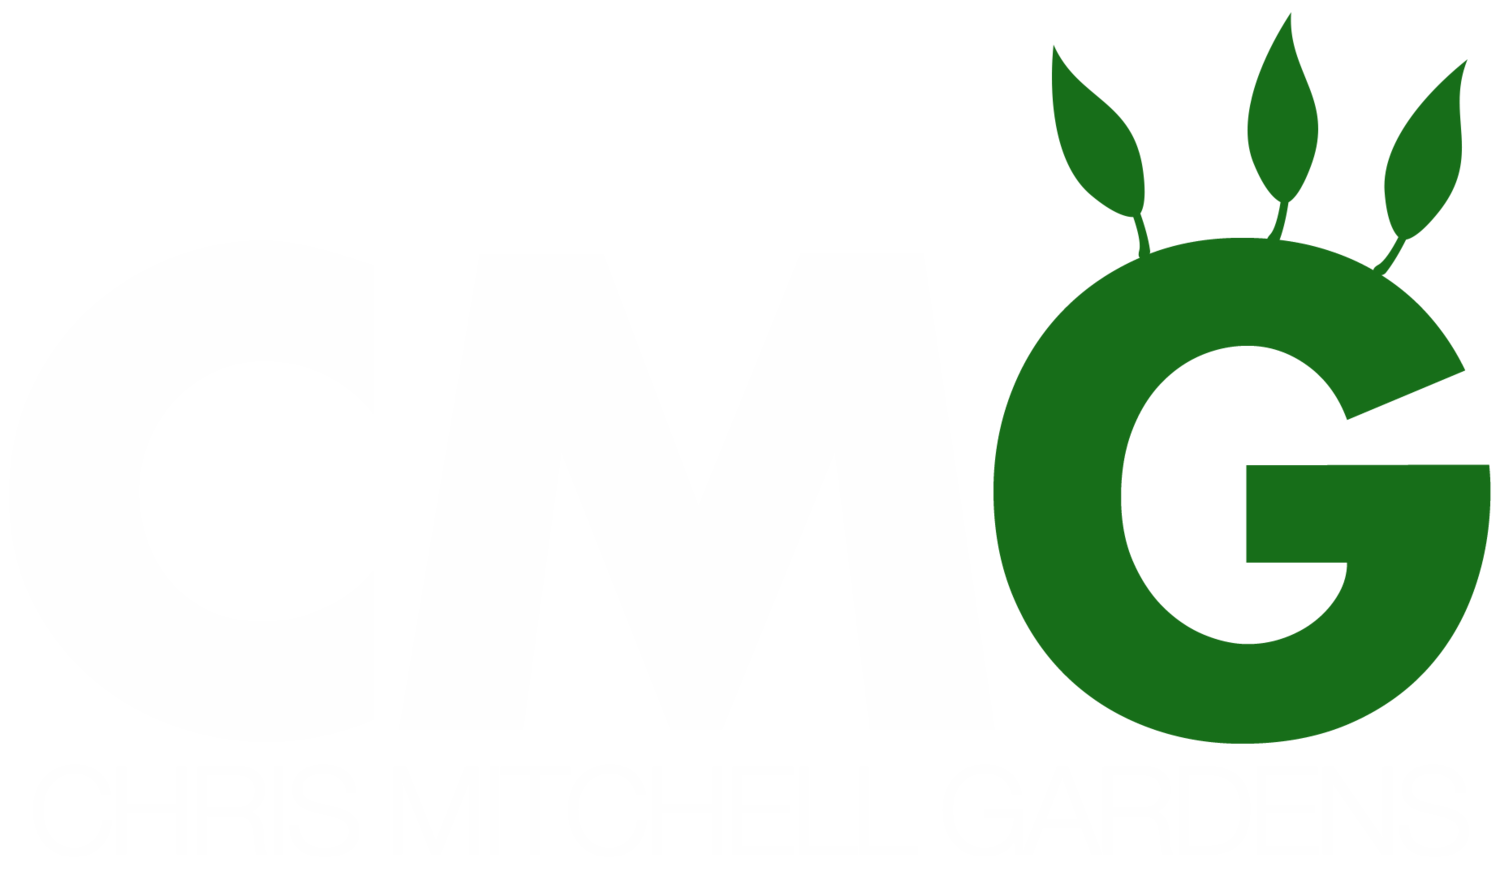 Chris Mitchell Gardens